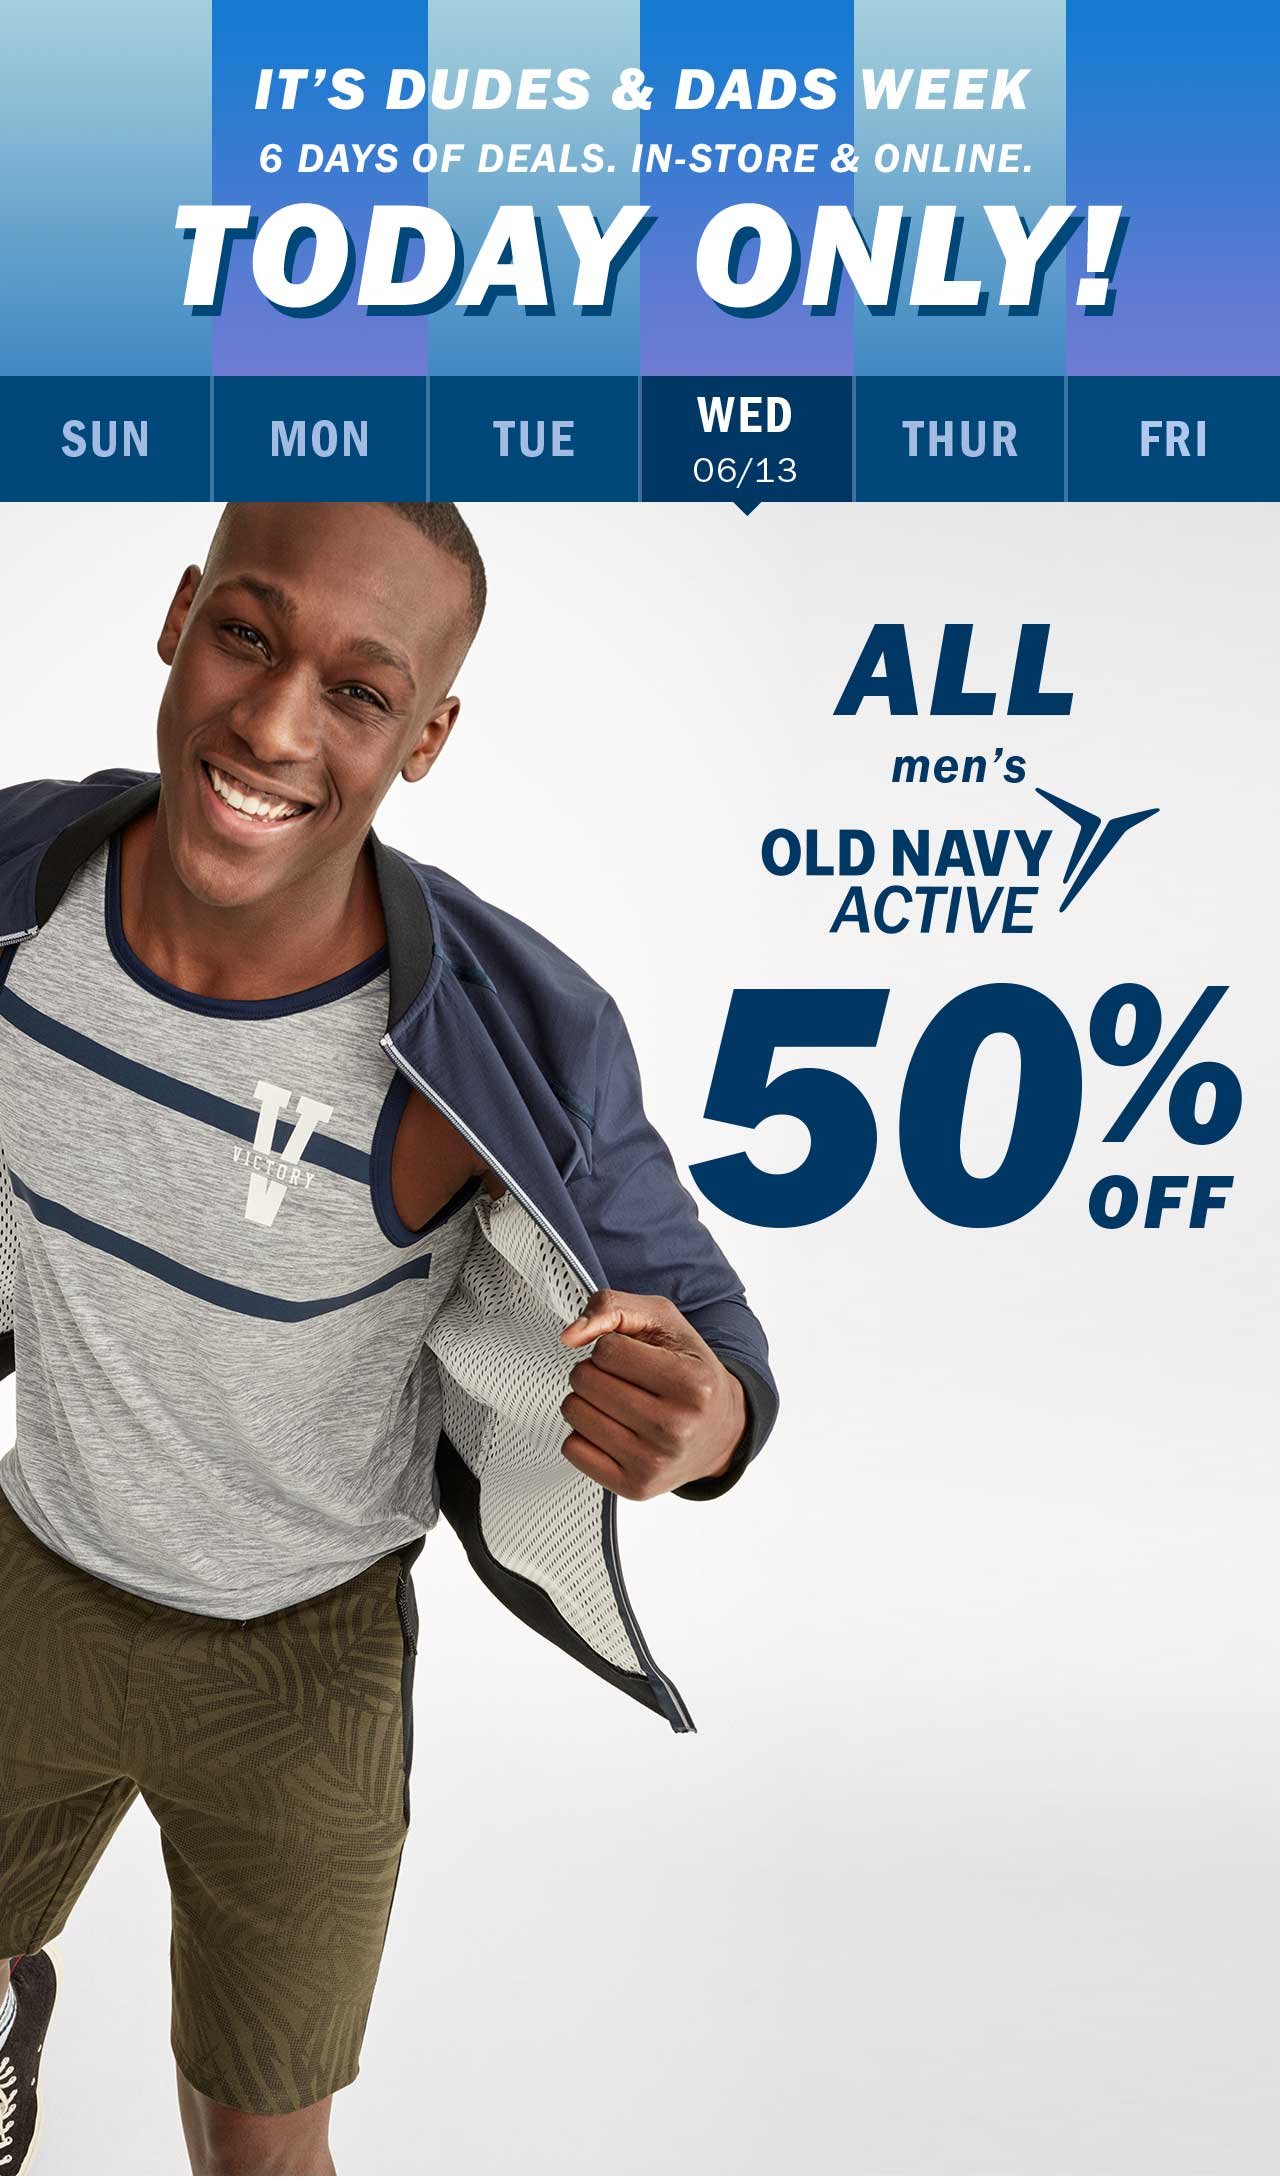 TODAY ONLY! | ALL men's OLD NAVY ACTIVE 50% OFF